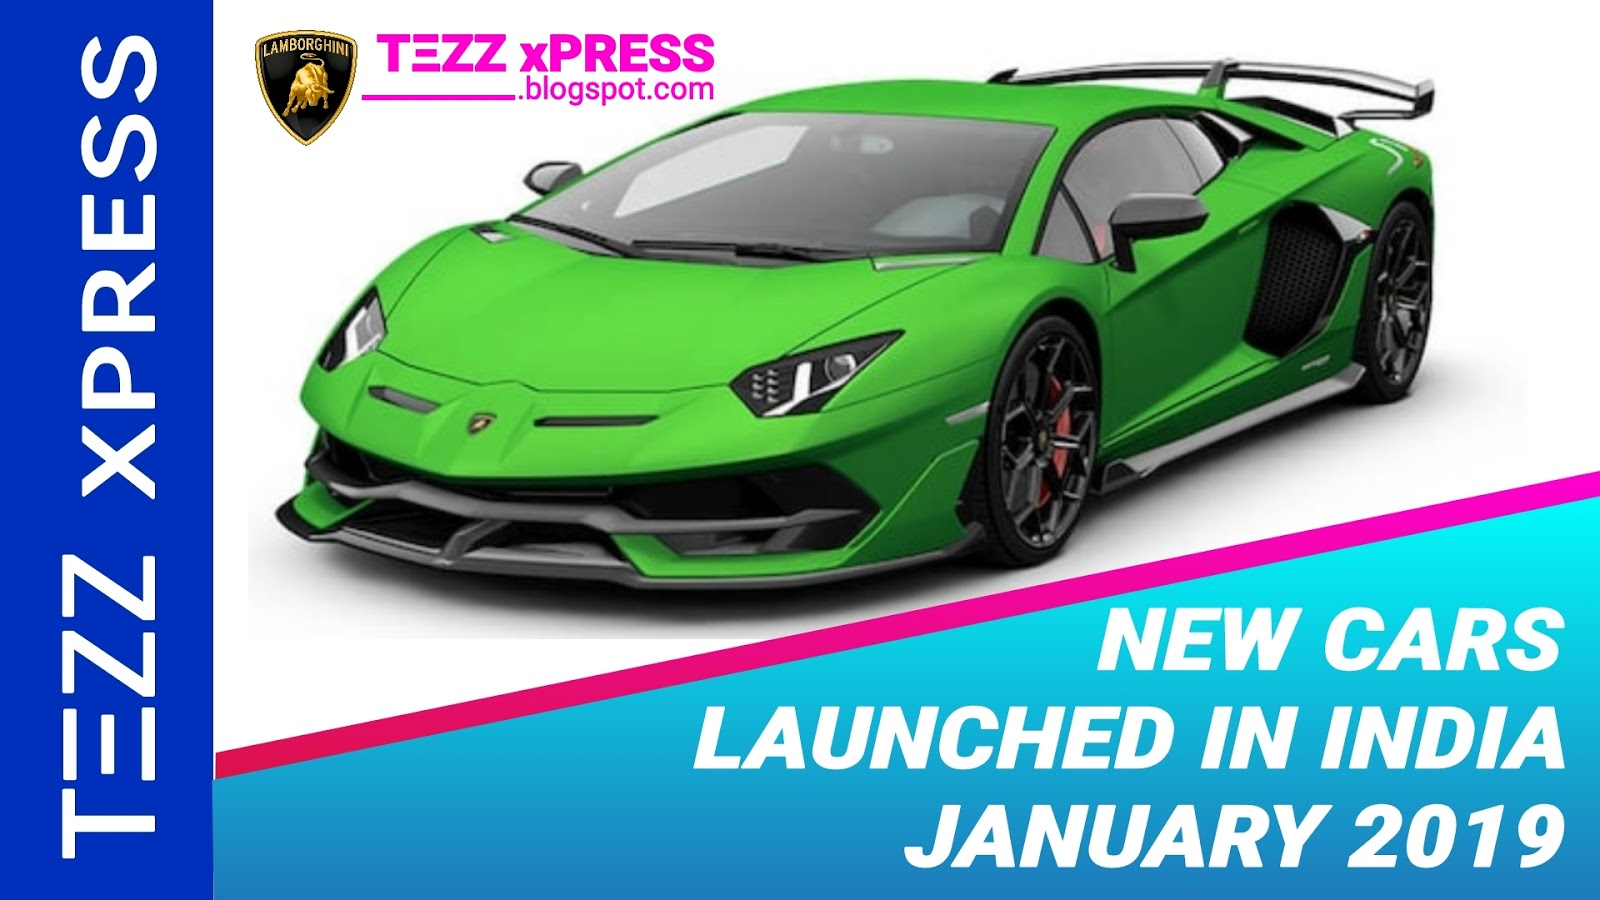 New Cars Launched In India January 2019 Tezz Xpress